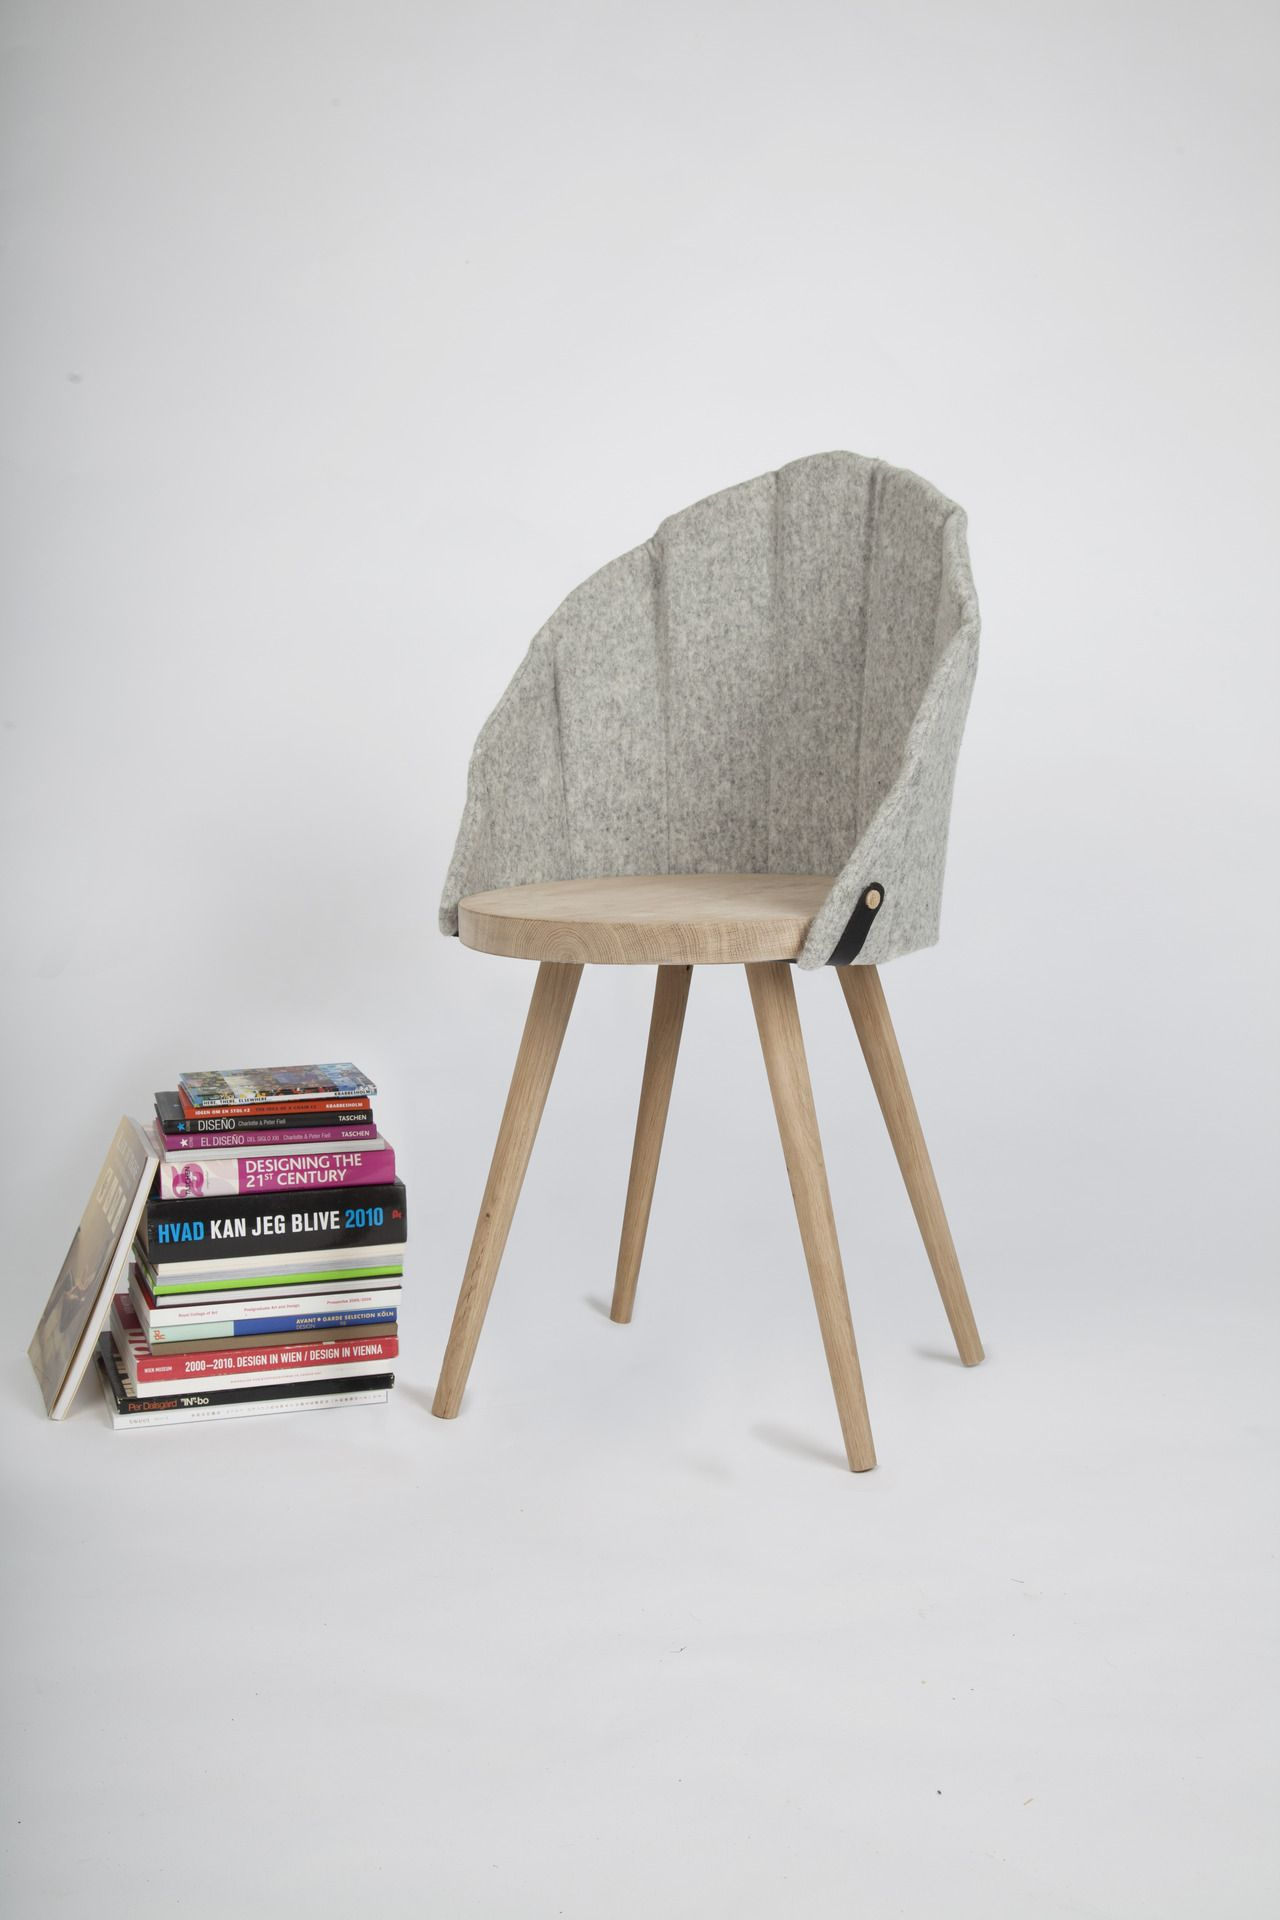 Chair by Malene Jonsson and Ditte Willads Petersen from Krabbesholm